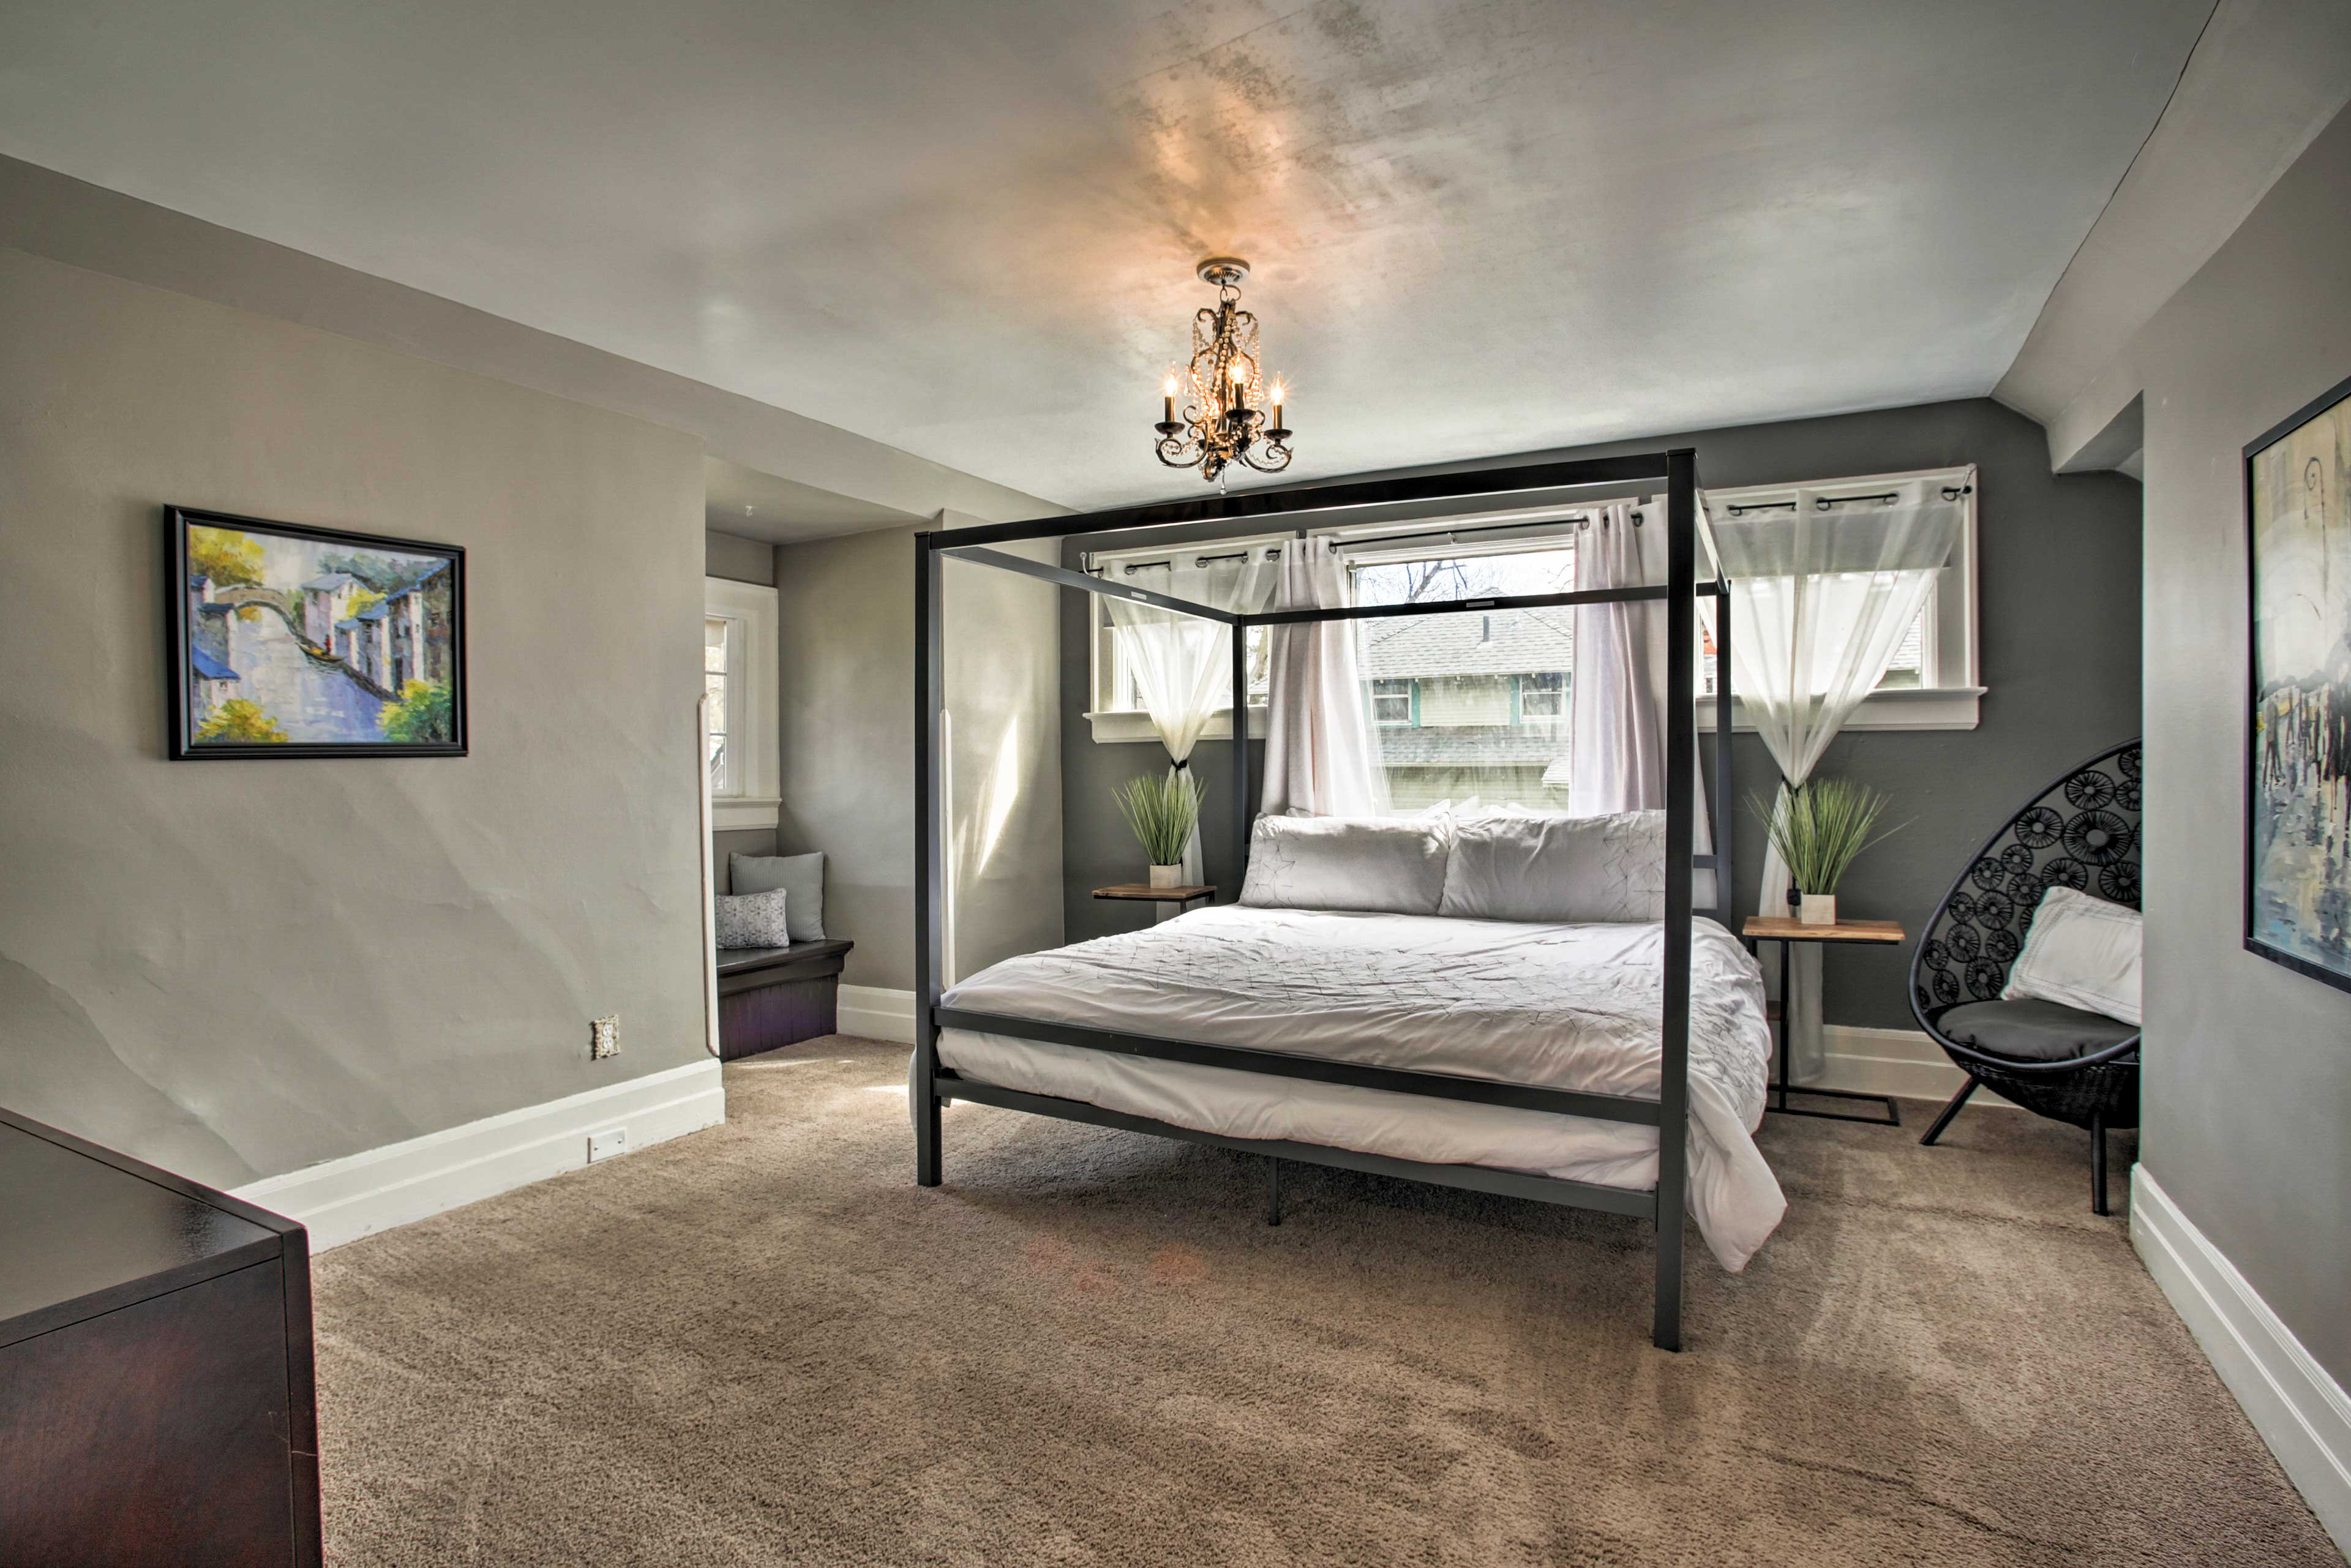 The master bedroom boasts a queen-sized bed.